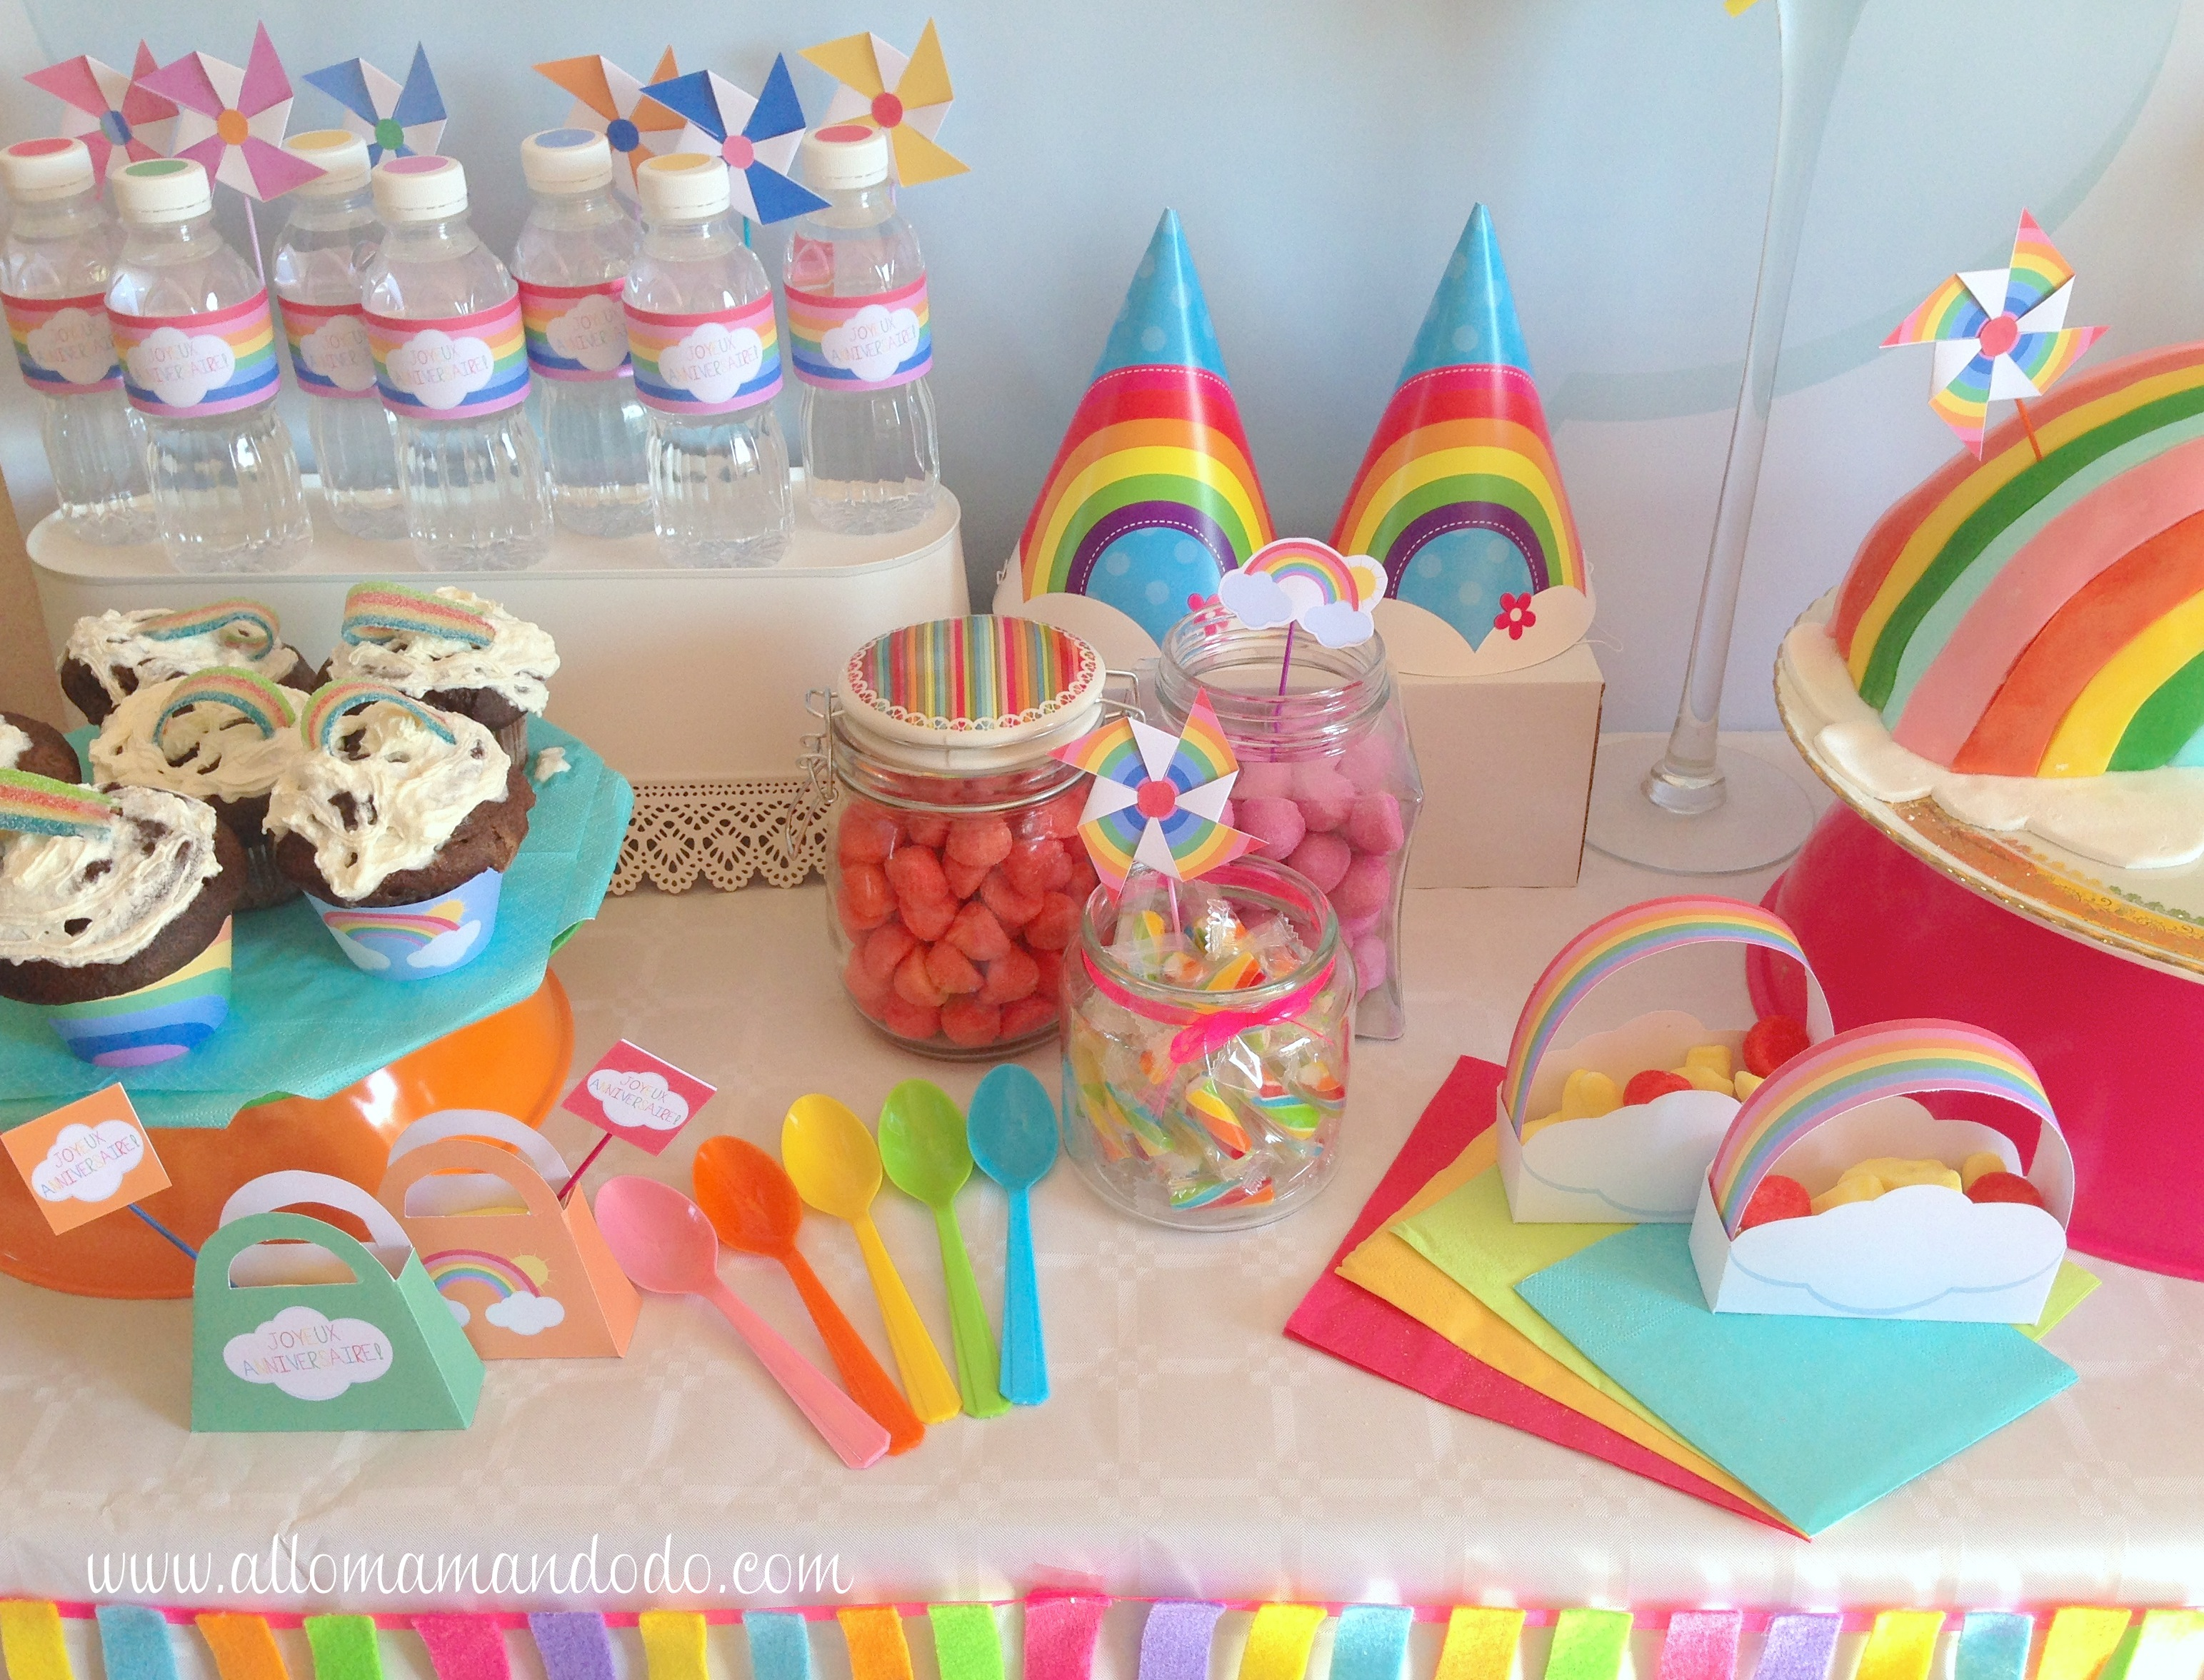 La sweet table d co d 39 anniversaire arc en ciel les for Decoration maison licorne